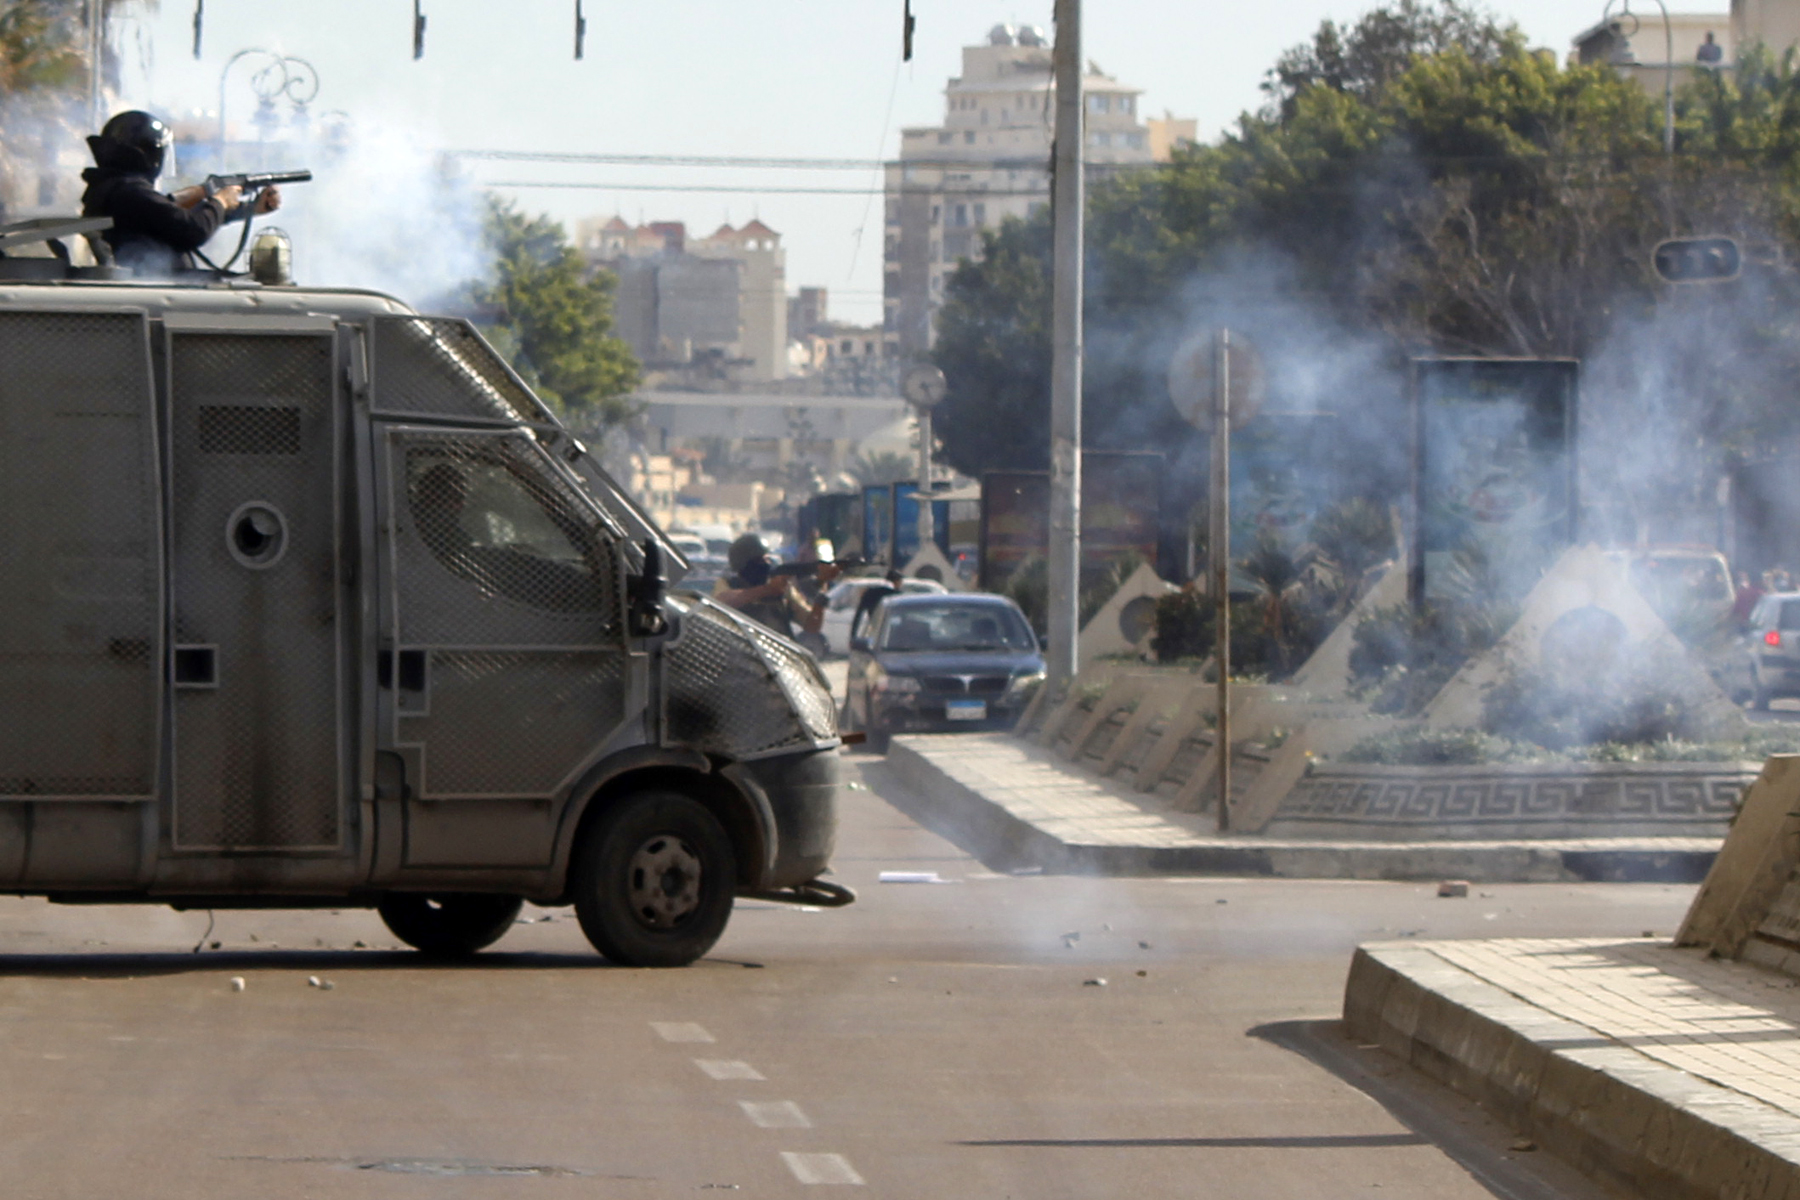 Marches were interrupted by security forces using teargas and birdshot (Photo by Ahmed Arab)